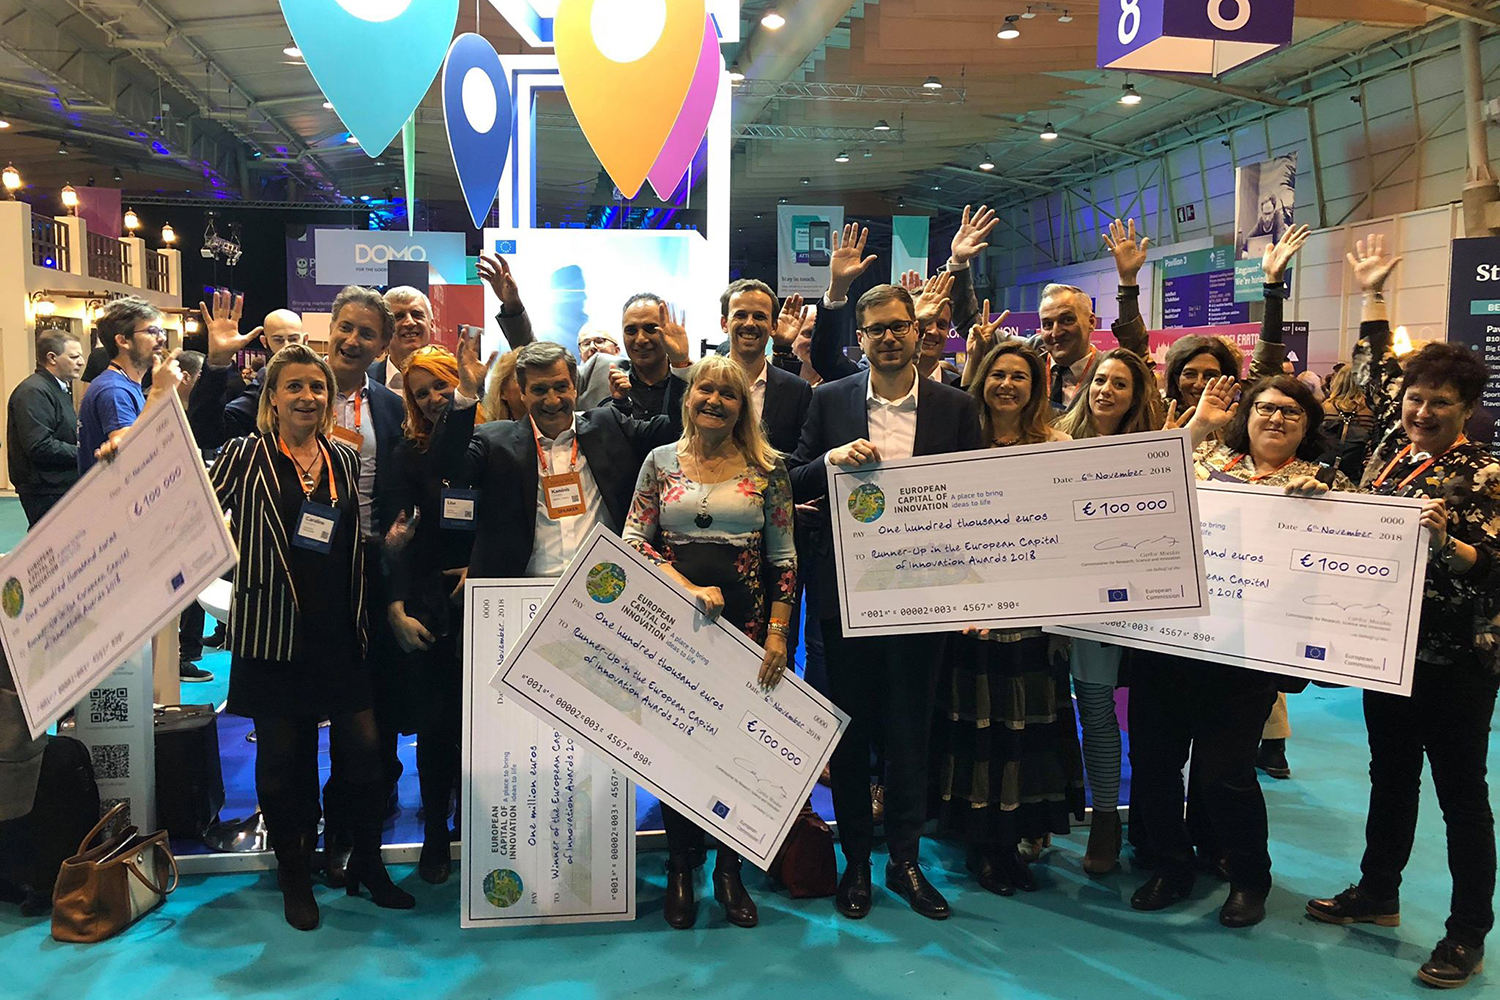 A group of cheerful people from Umeå holding up cash prize checks awarded iCapital runner-up 2018